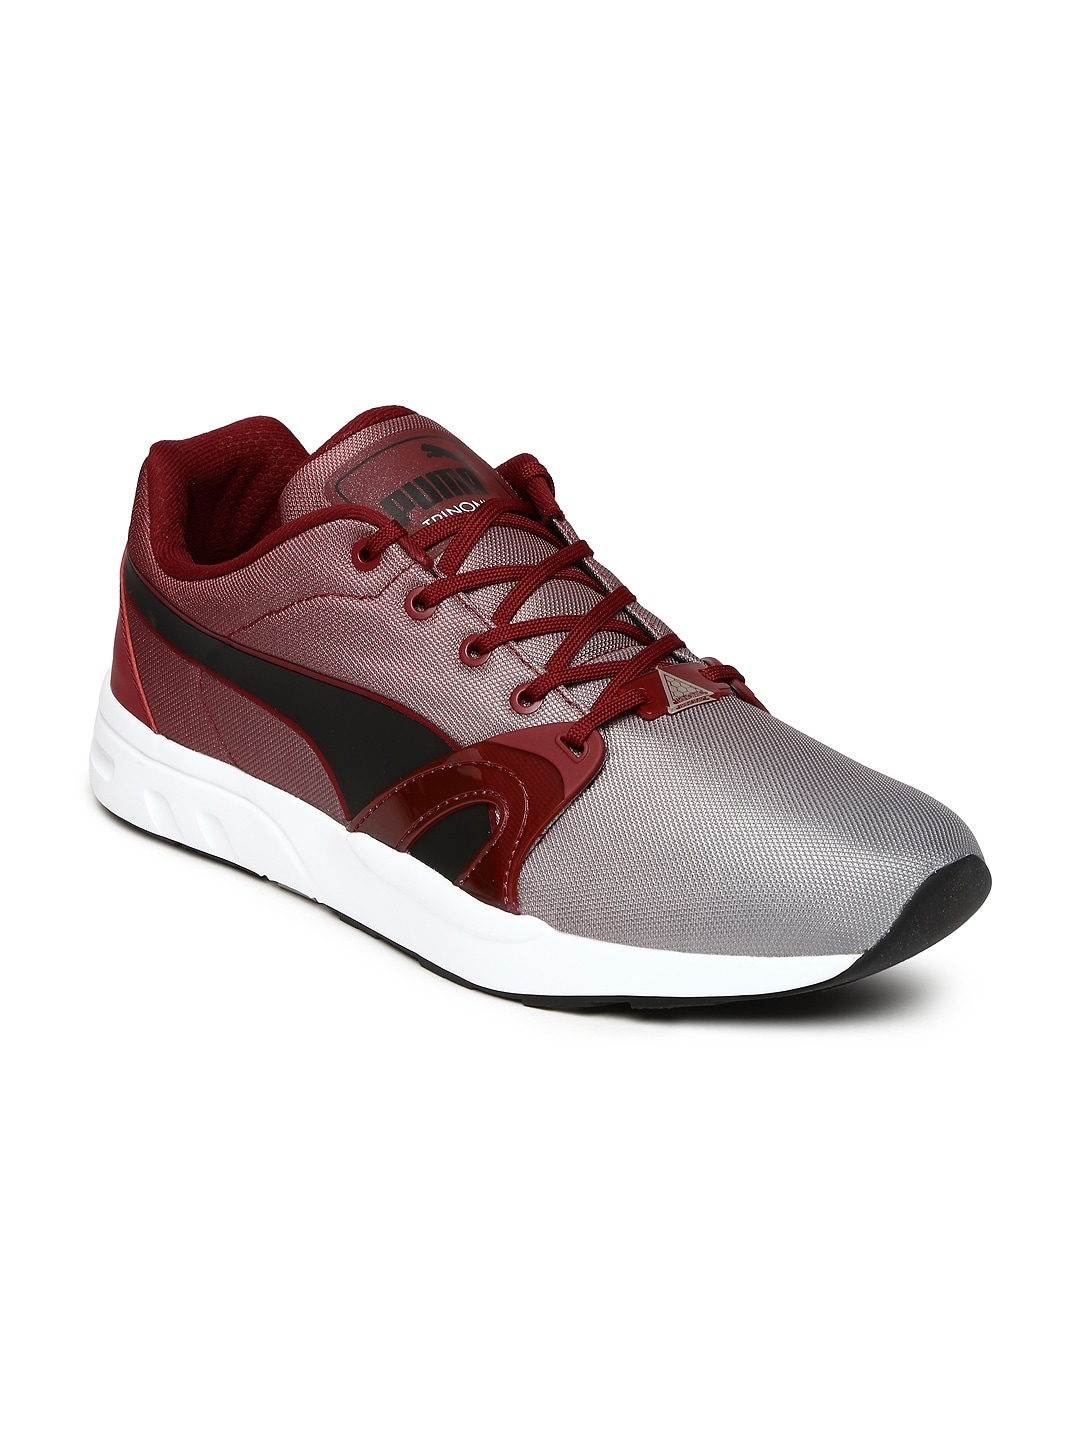 a580b916386e Puma 35971303 Men Grey And Maroon Xt S Blur Casual Shoes- Price in India